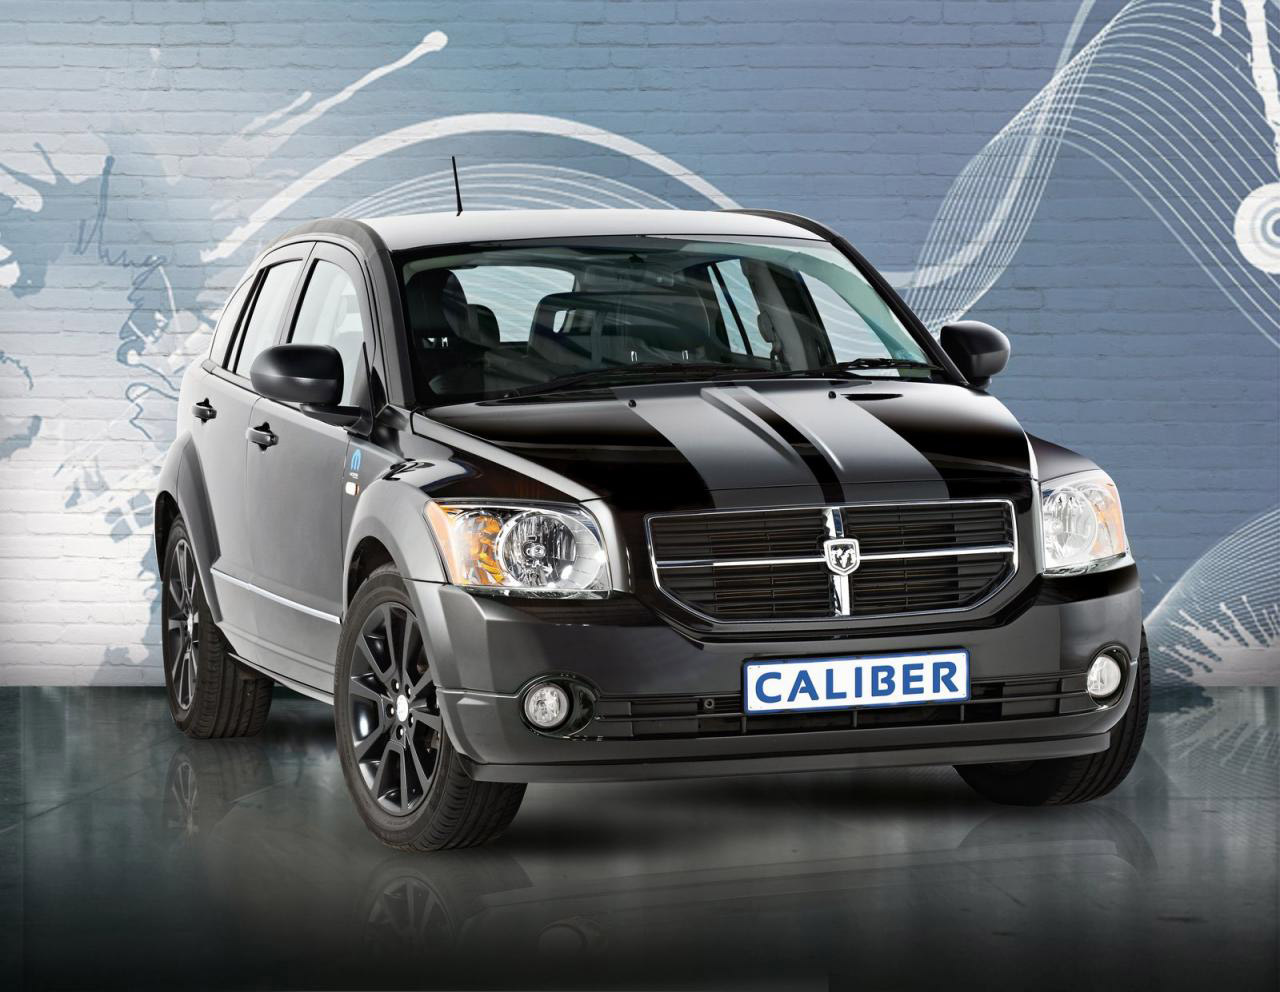 2011 dodge caliber mopar edition. Black Bedroom Furniture Sets. Home Design Ideas